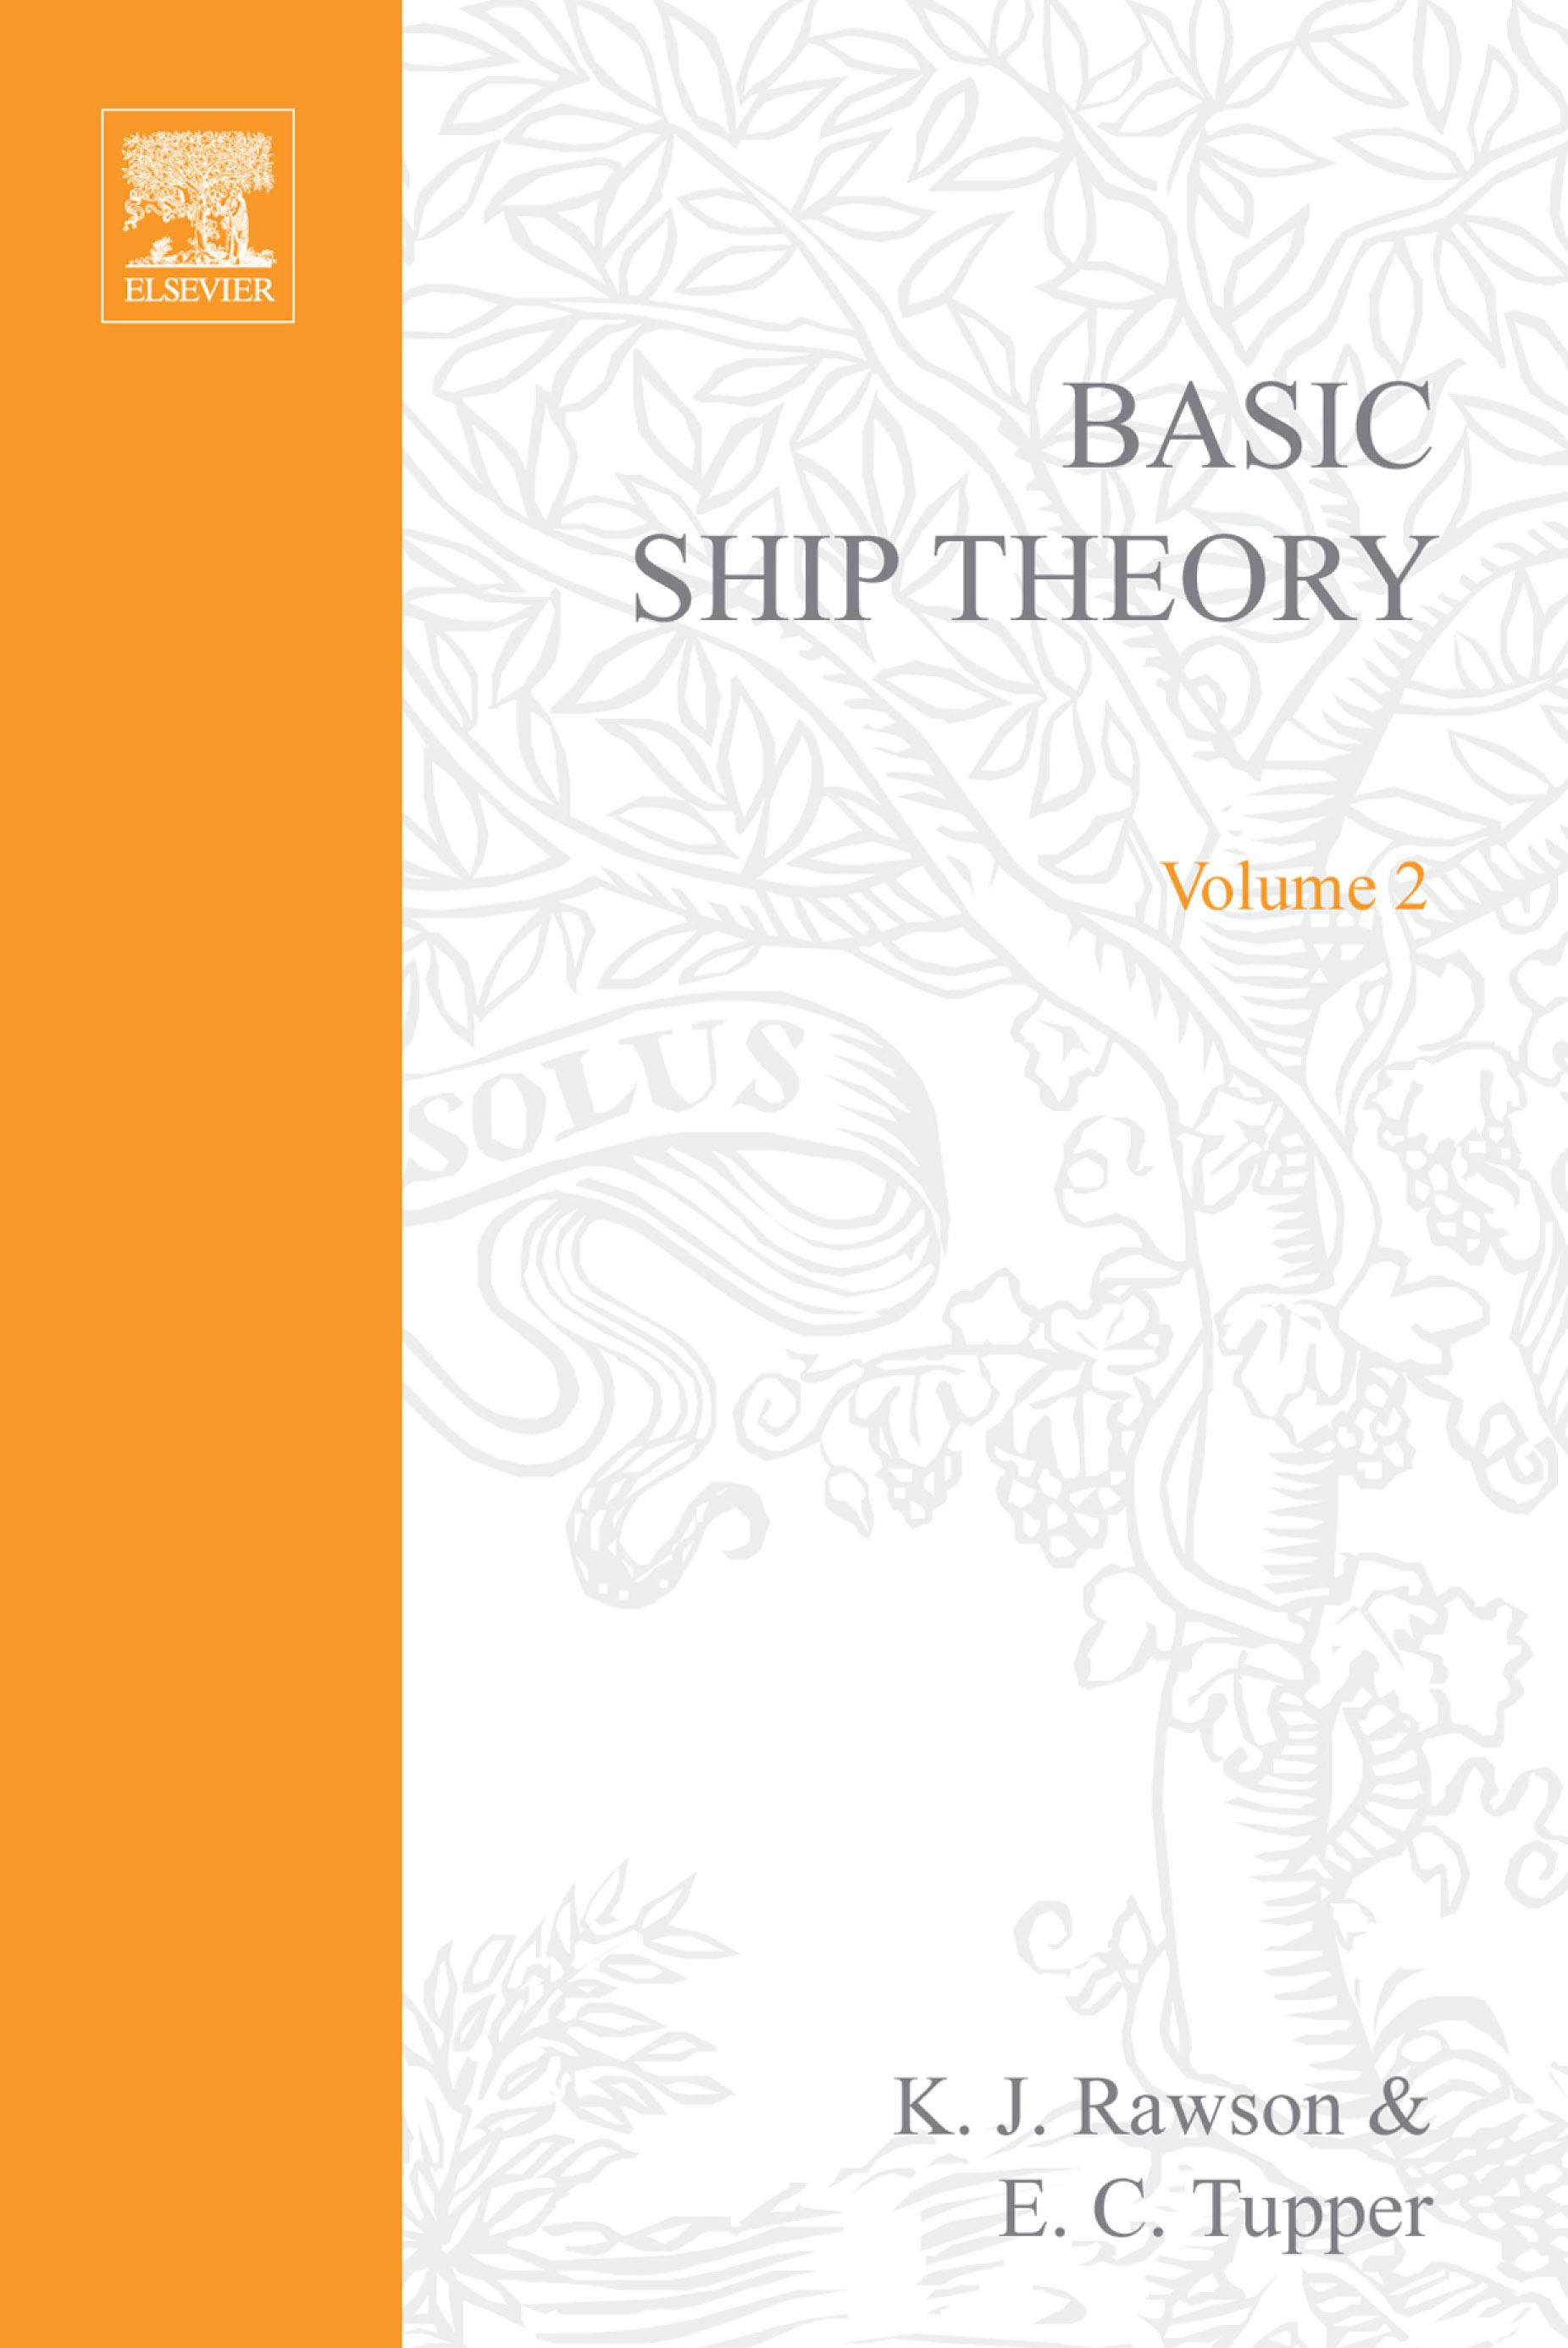 Basic Ship Theory Volume 2